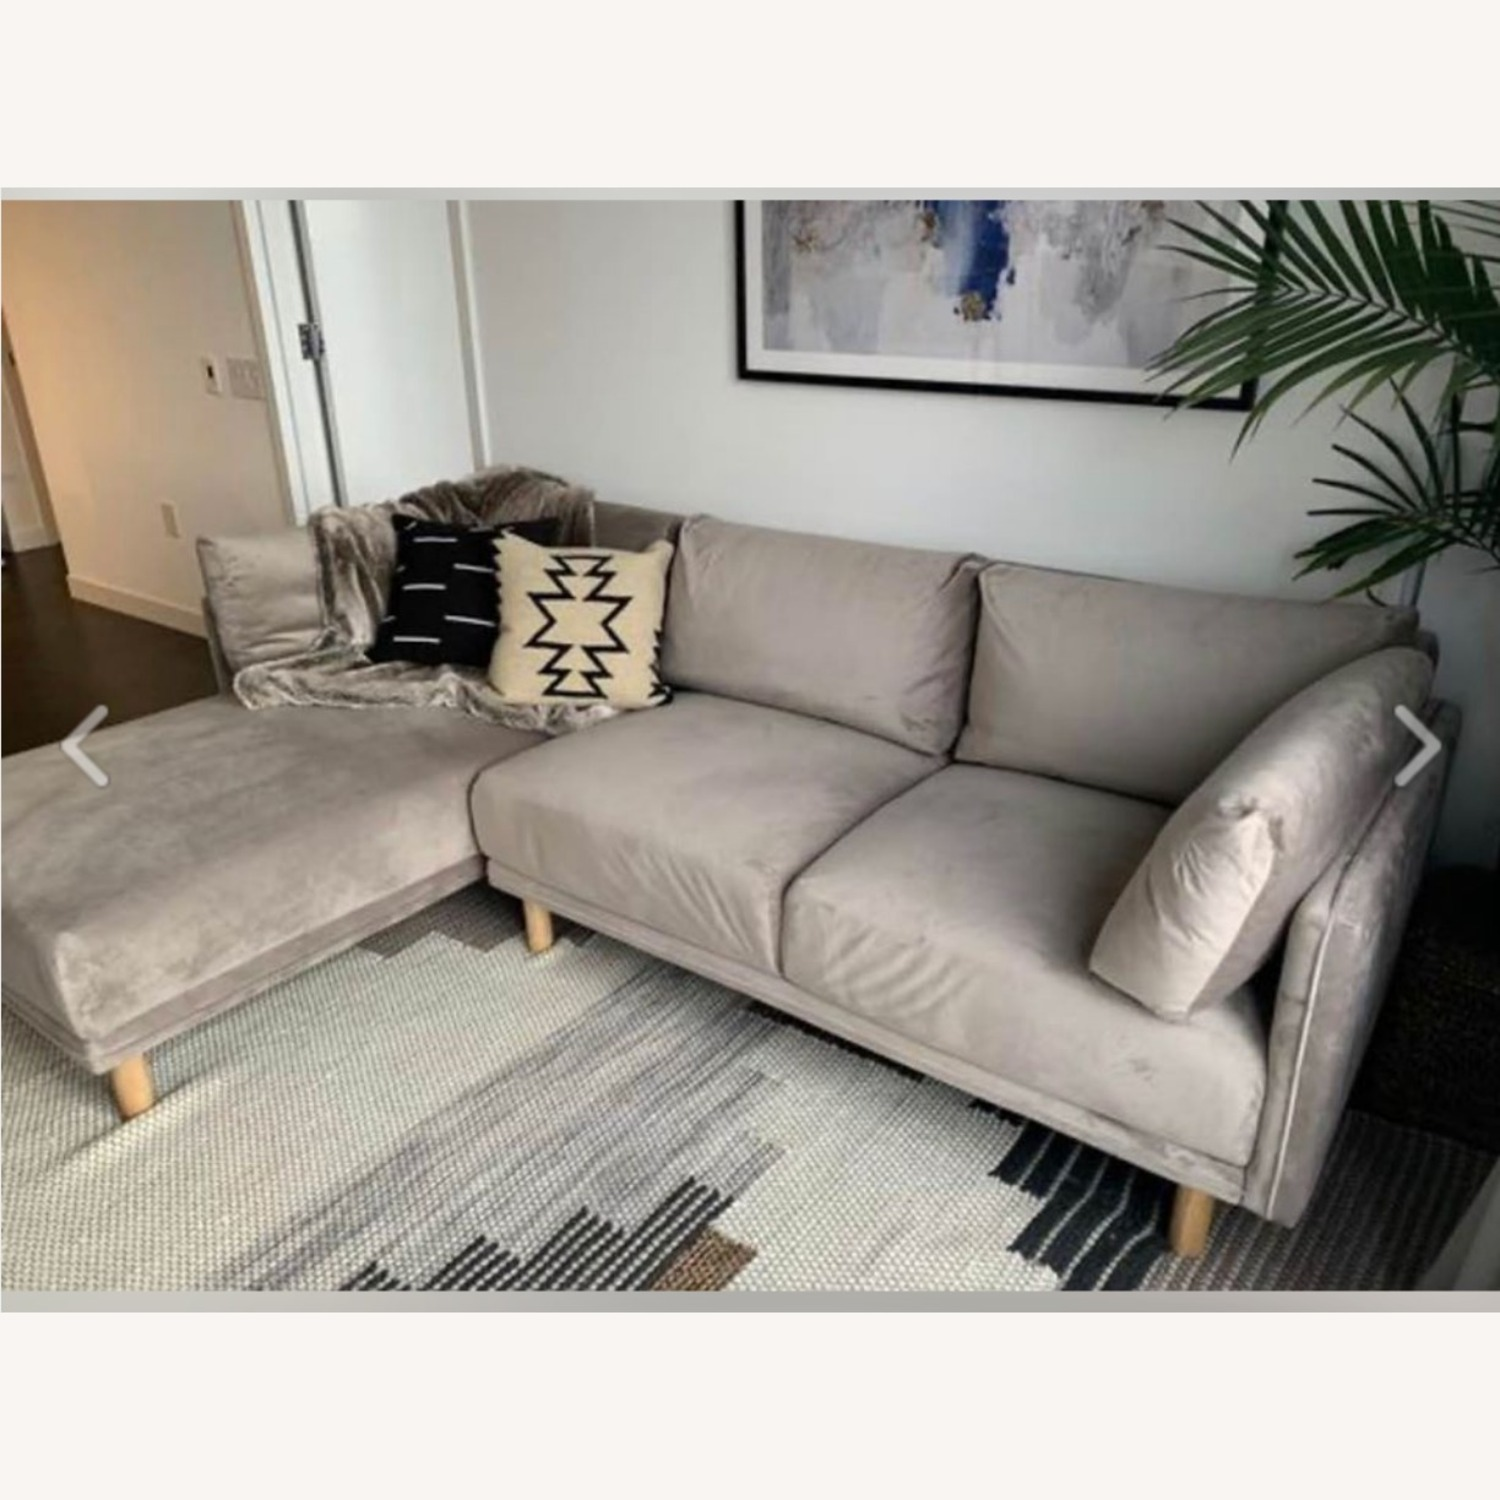 Rove Anderson Collection Sectional Sofa - image-3